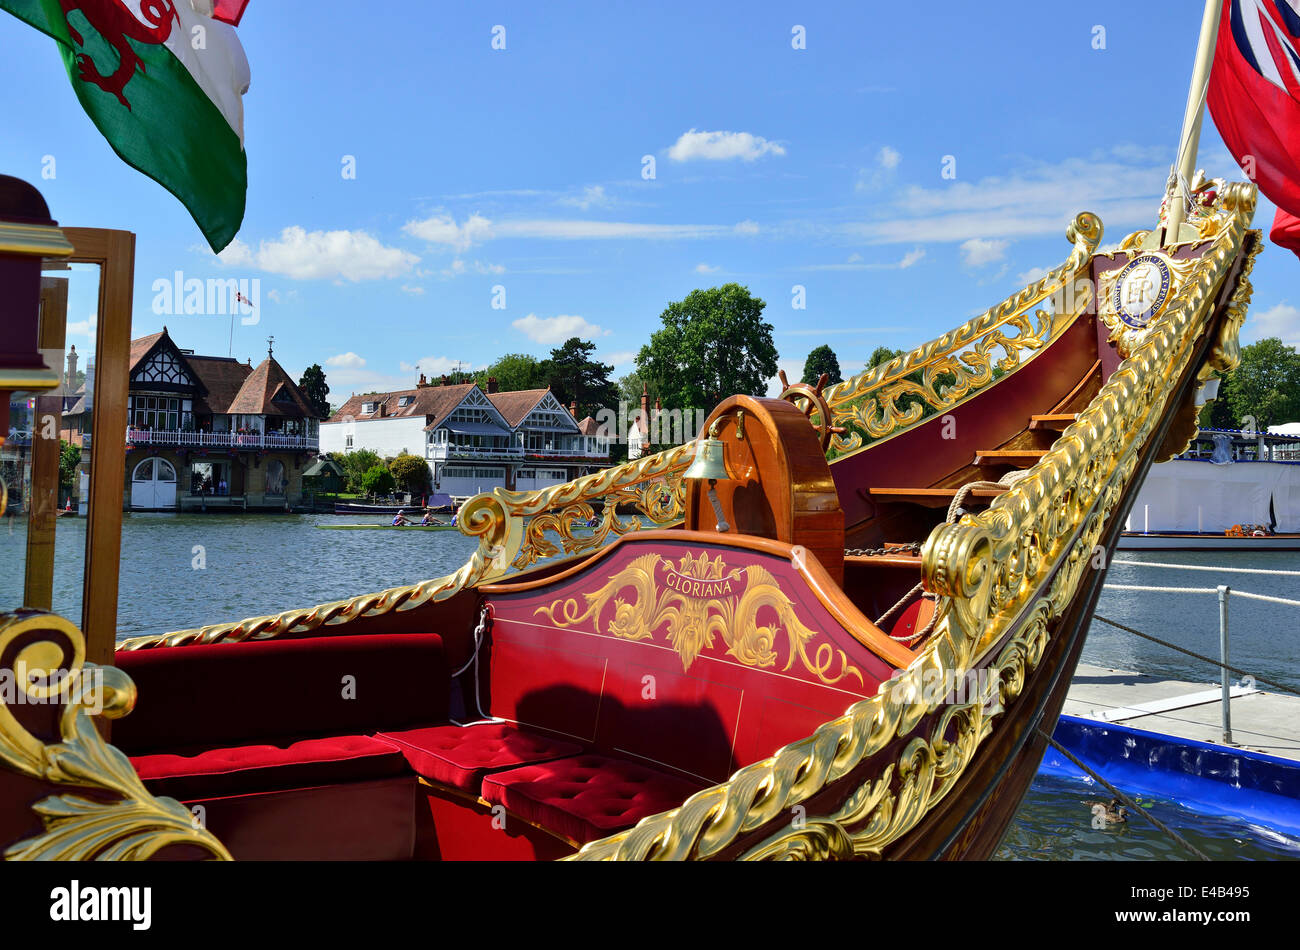 'Gloriana, the rowing barge built for the Queen's Diamond Jubilee, about to take  to the water again on - Stock Image